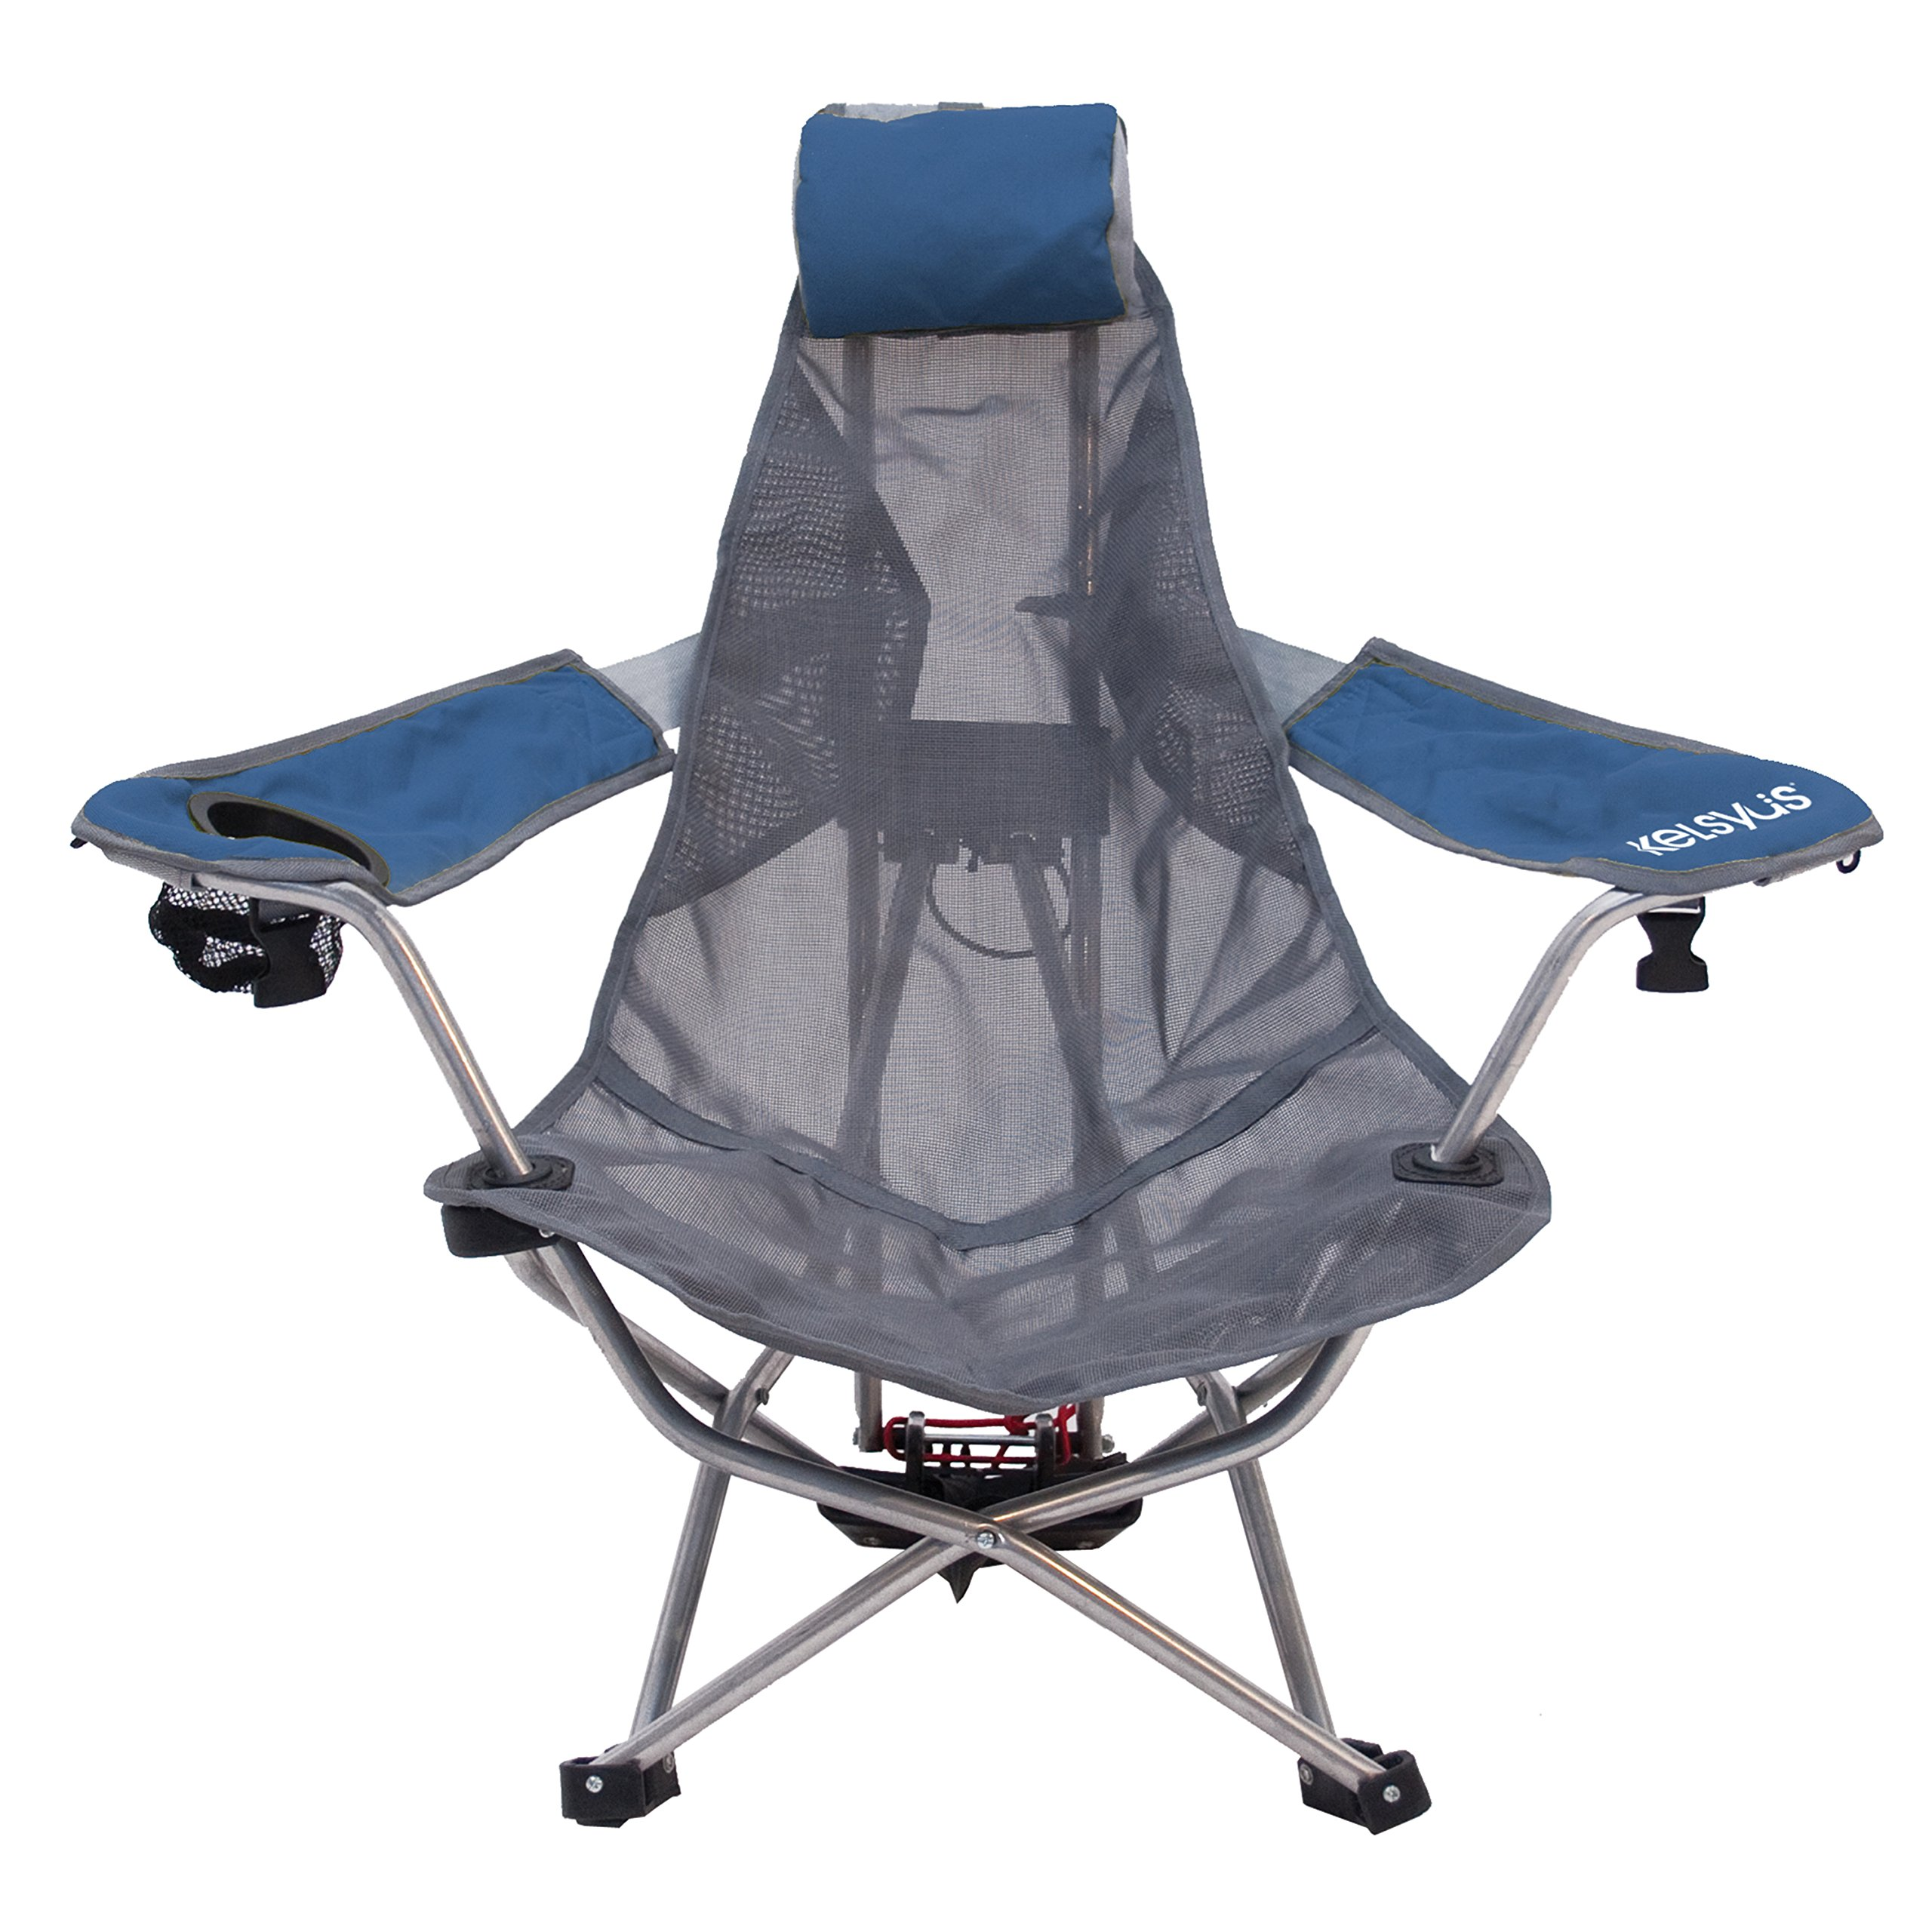 Kelsyus Mesh Backpack Chair - Portable Chair for Camping, Tailgates, and Outdoor Events by Kelsyus